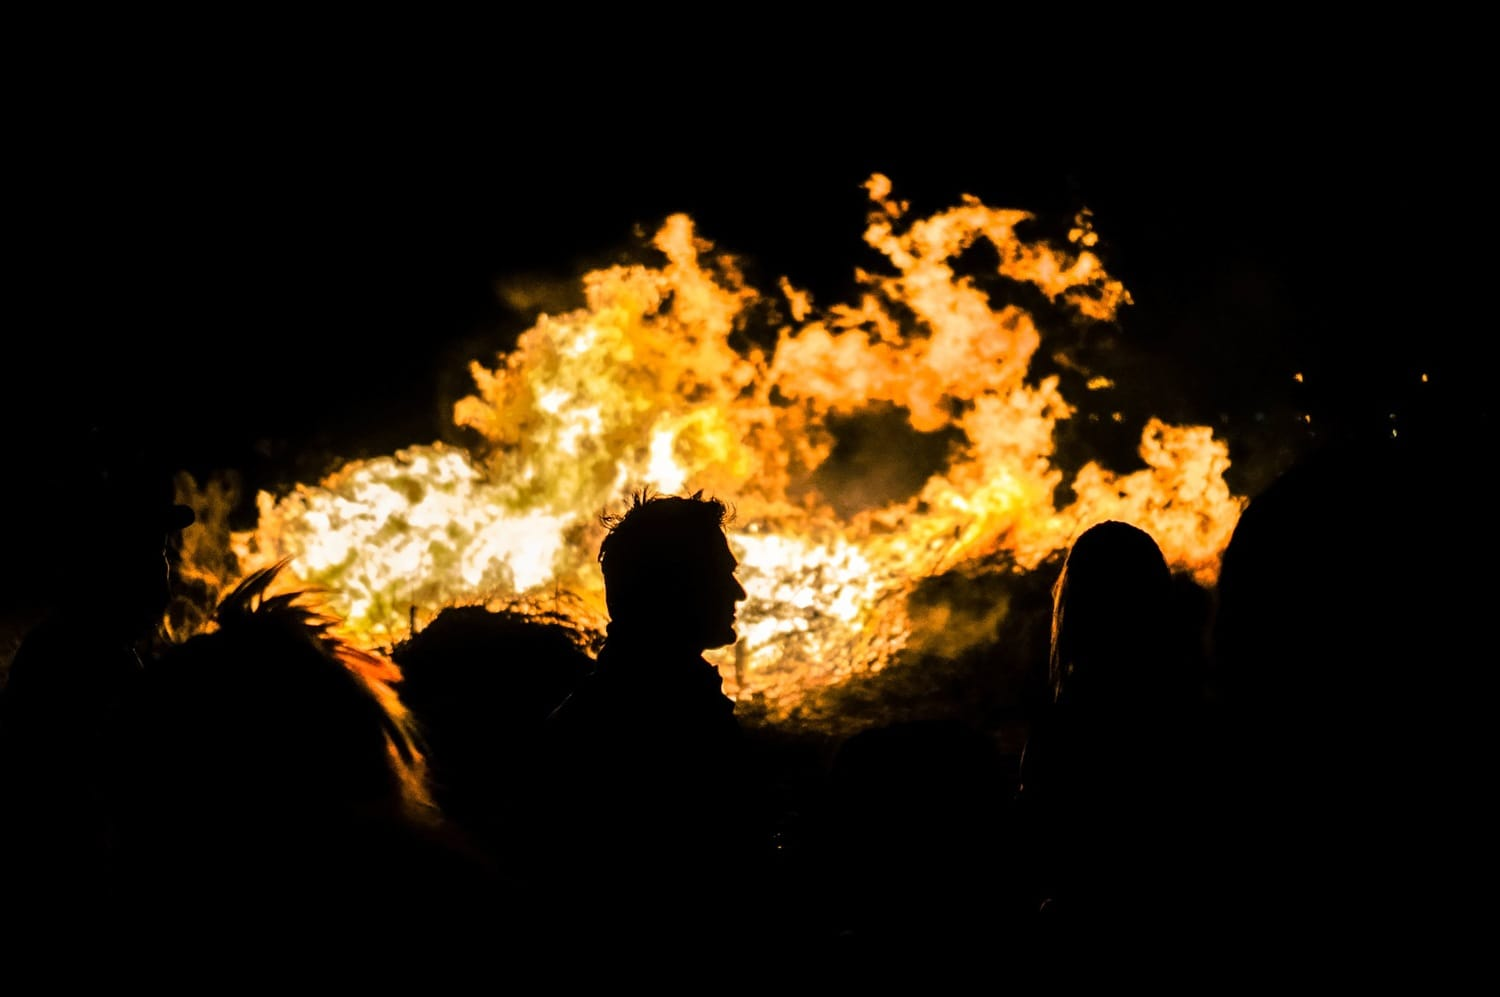 night the burning of the carnival king